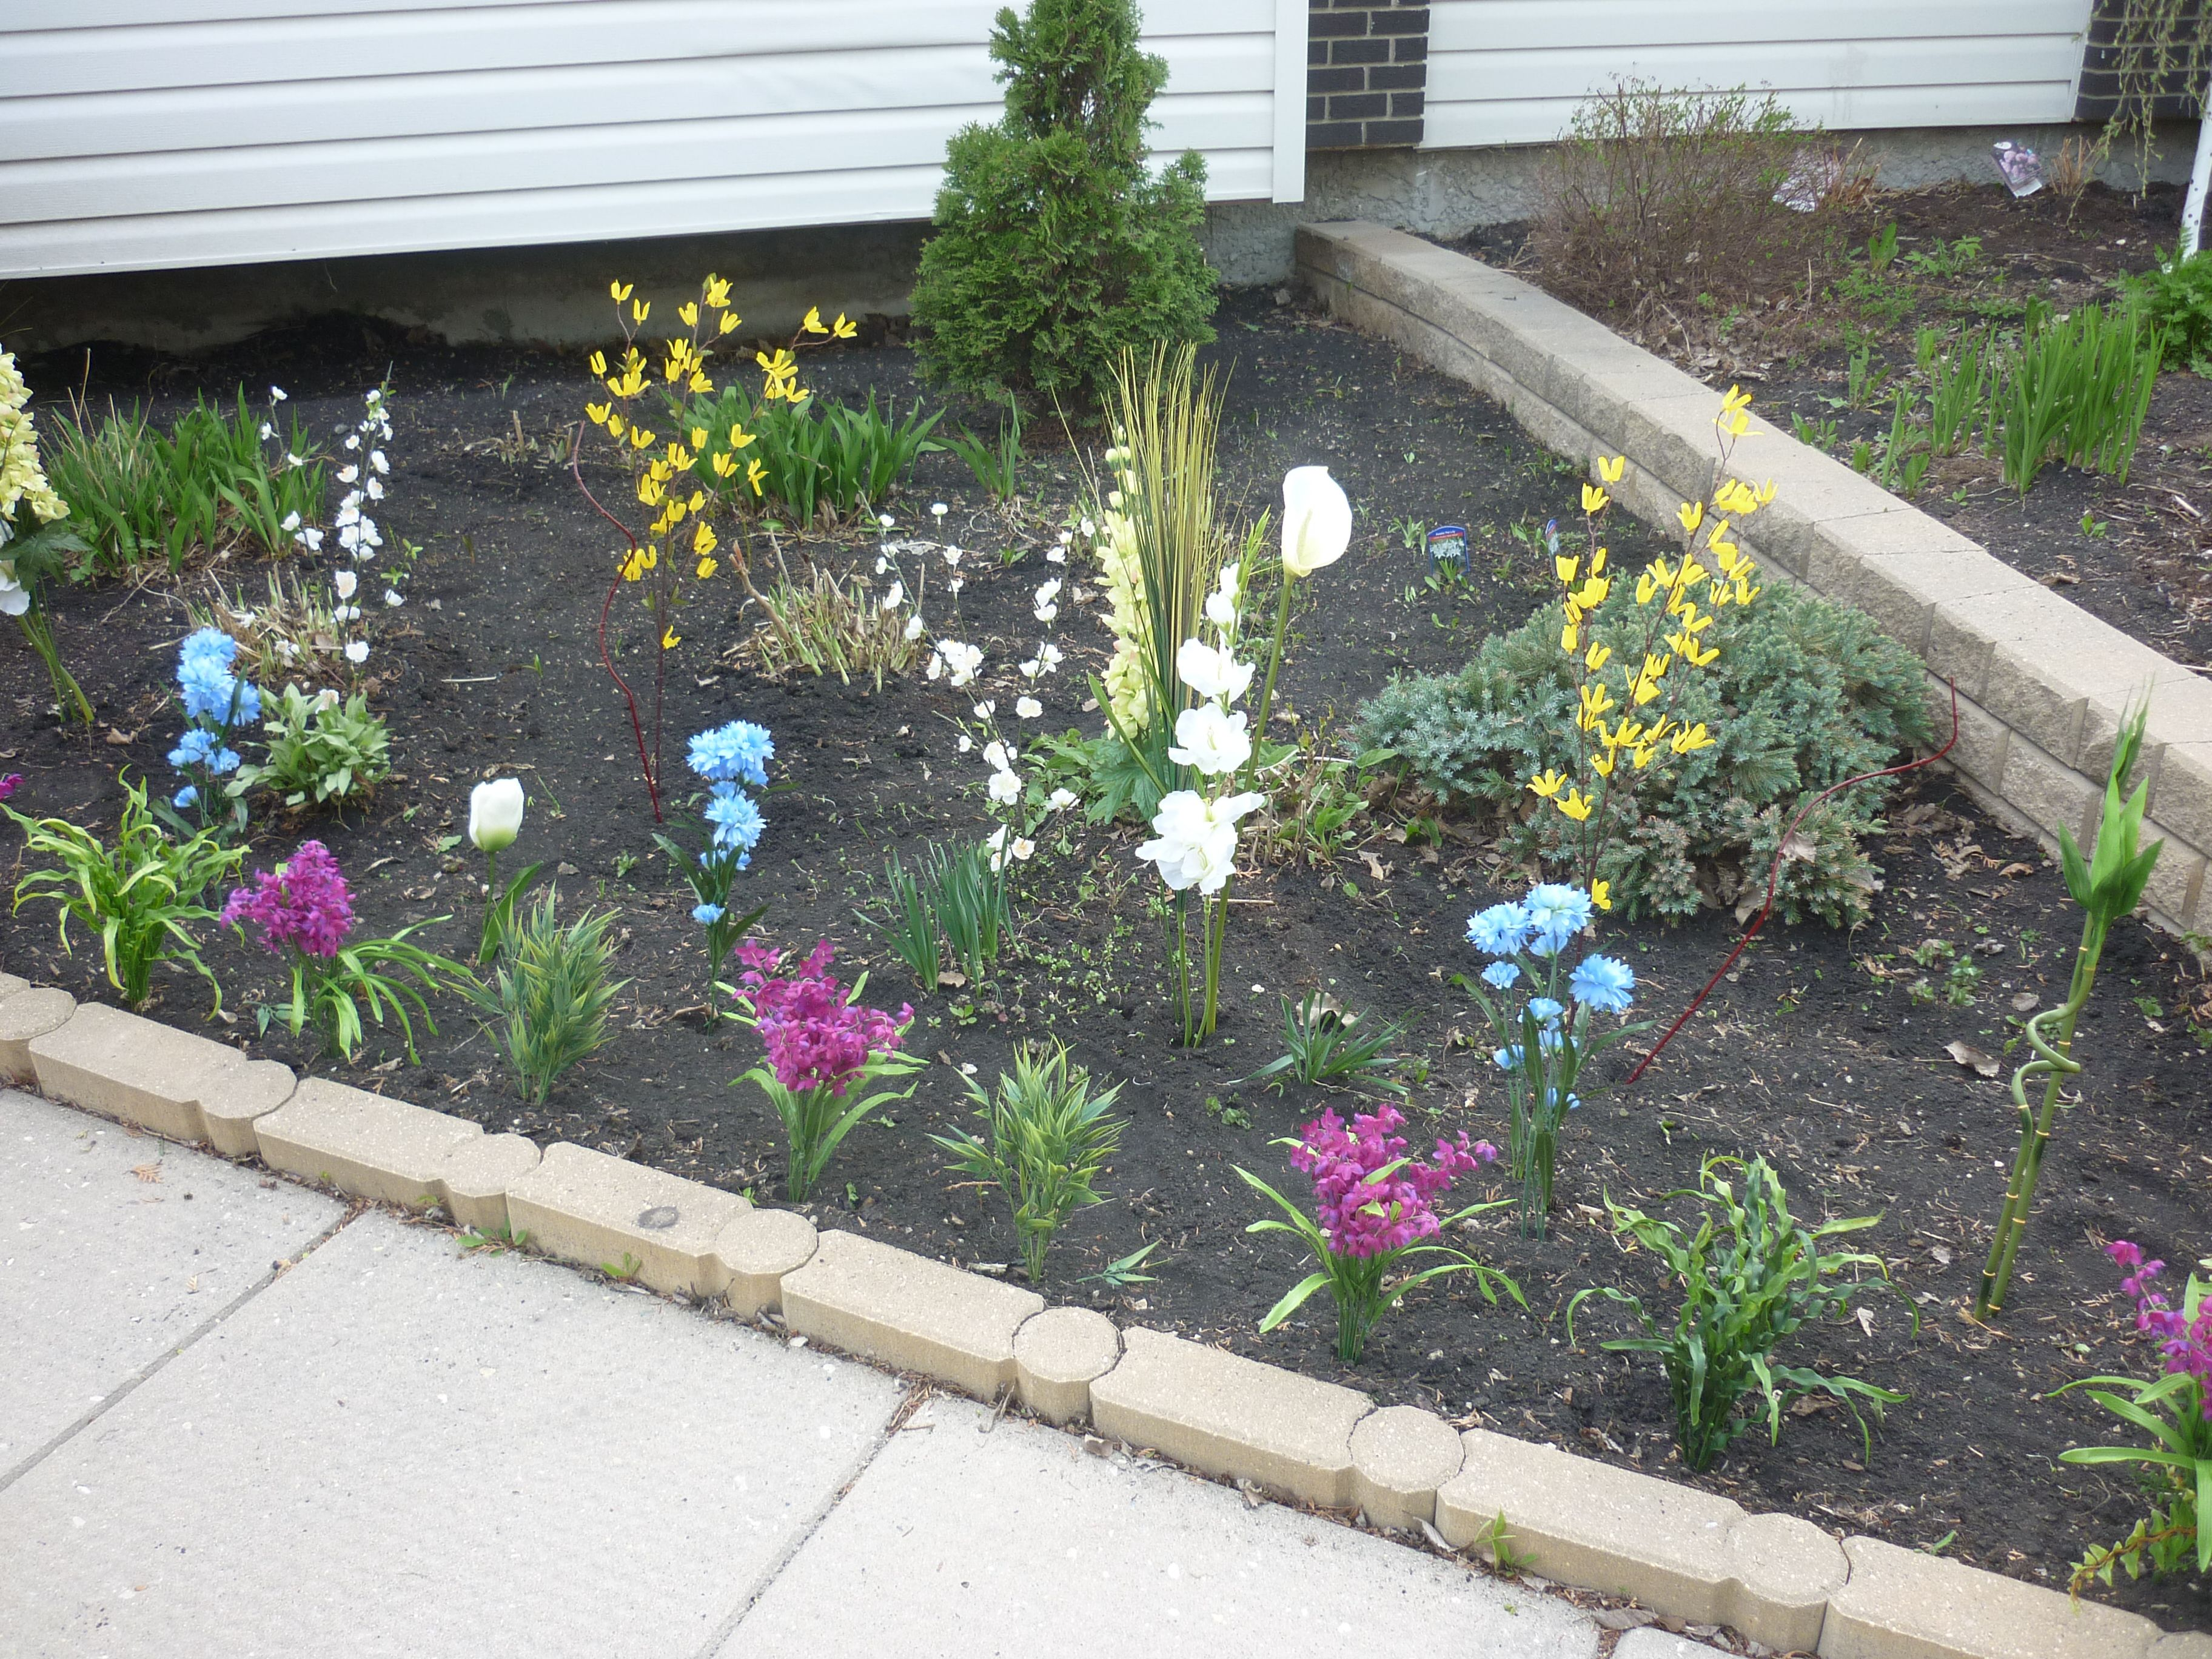 Faux Flower Garden (don't tell anyone they are fake!)